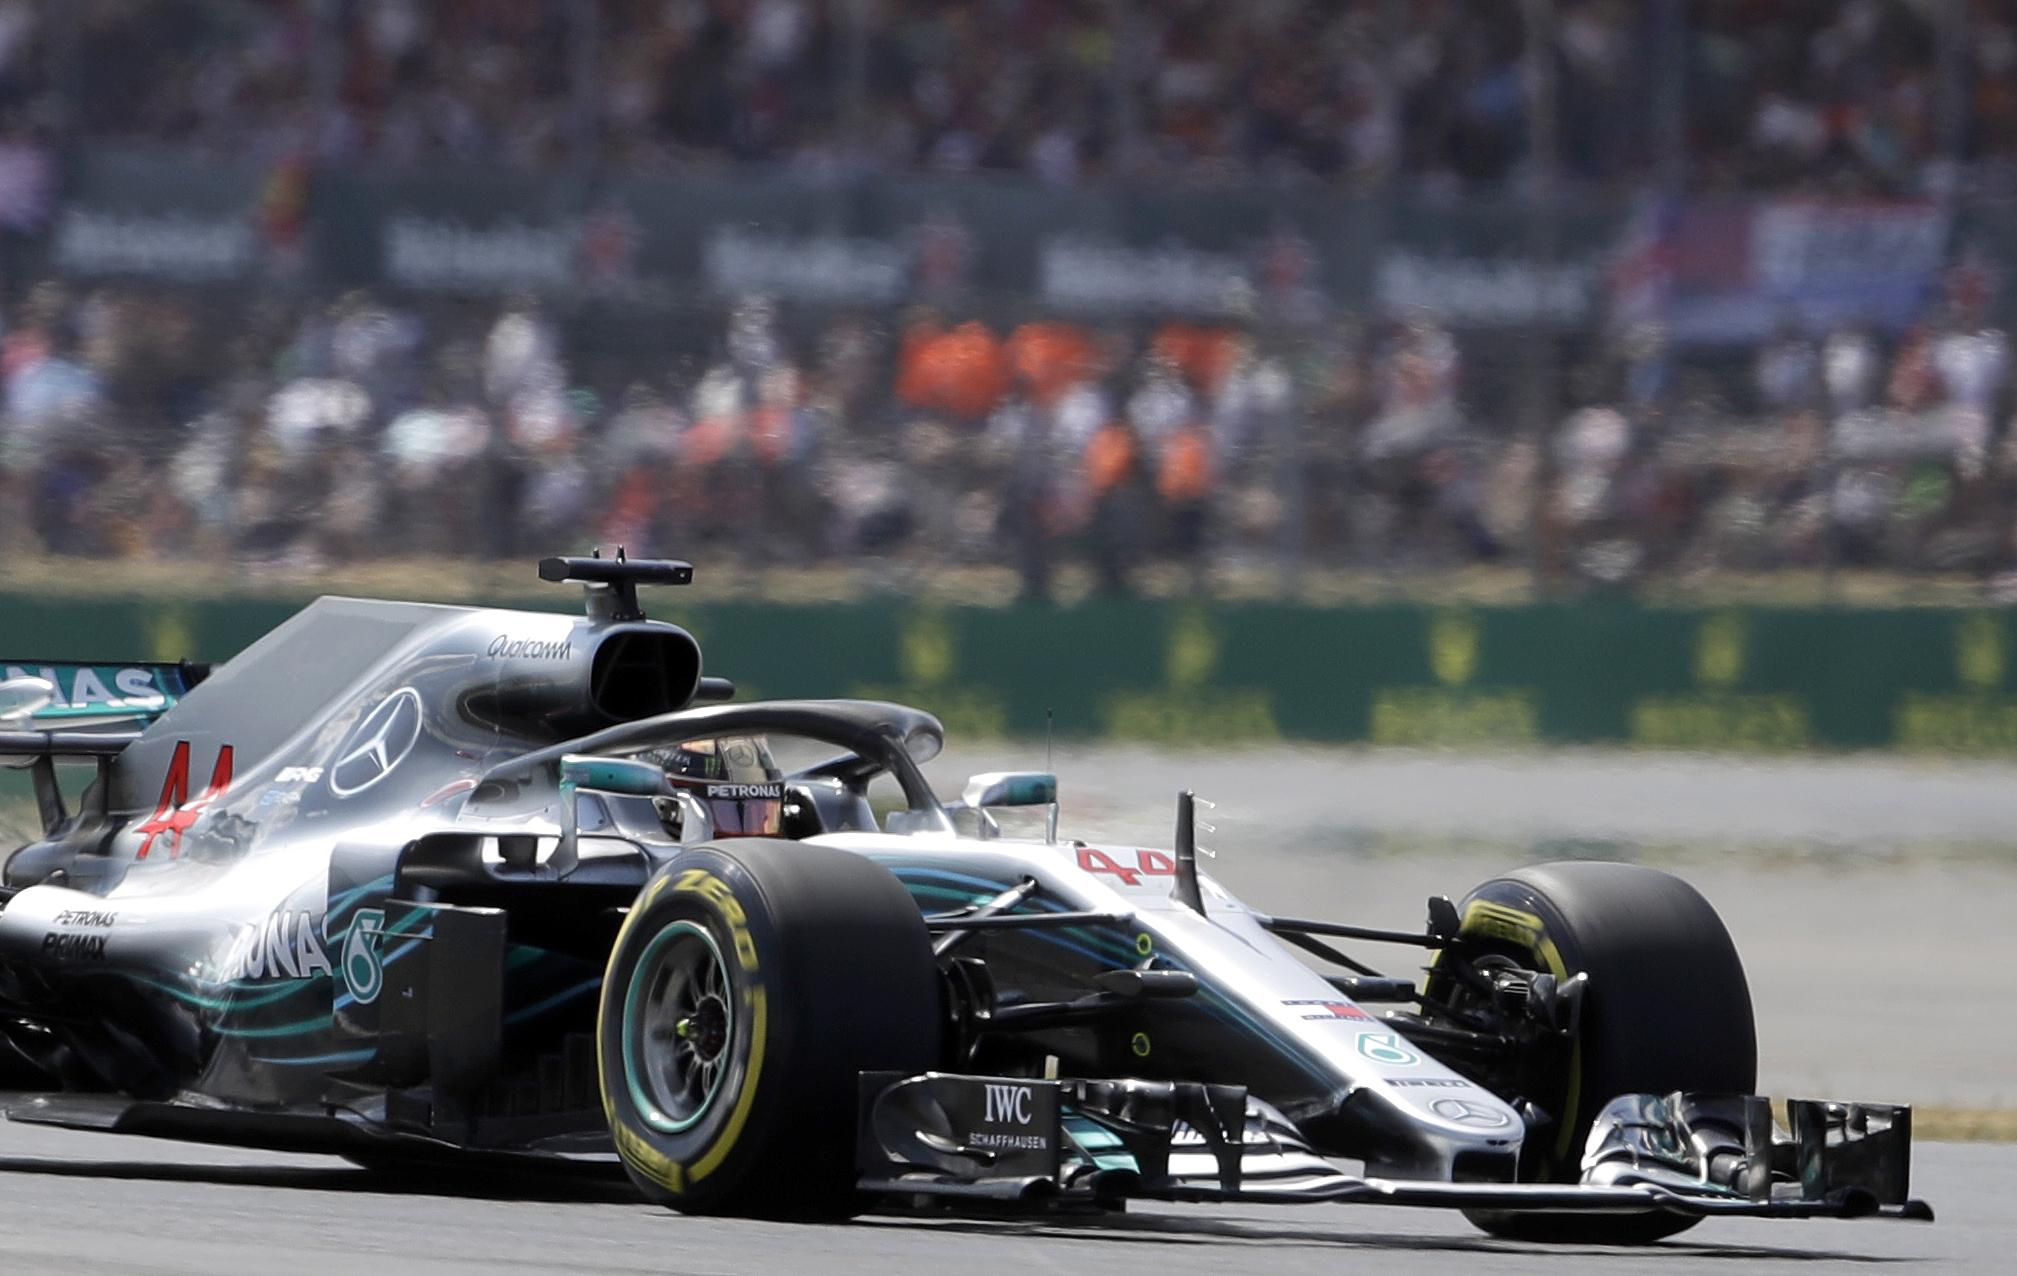 Lewis Hamilton set a new Silverstone track record to take British Grand Prix pole